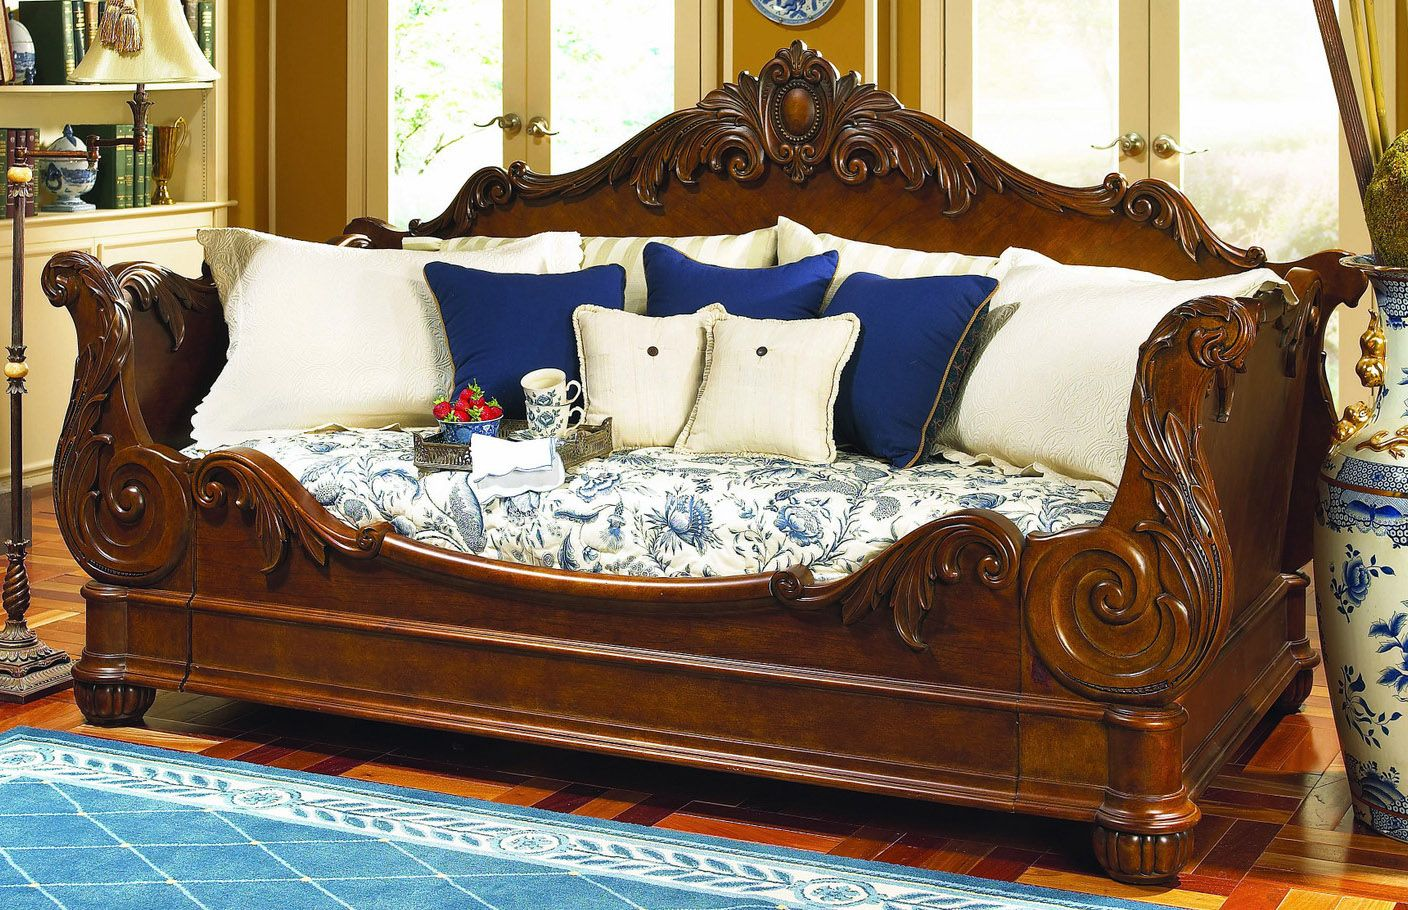 Pulaski Edwardian Daybed Image Daybed Victorian Style